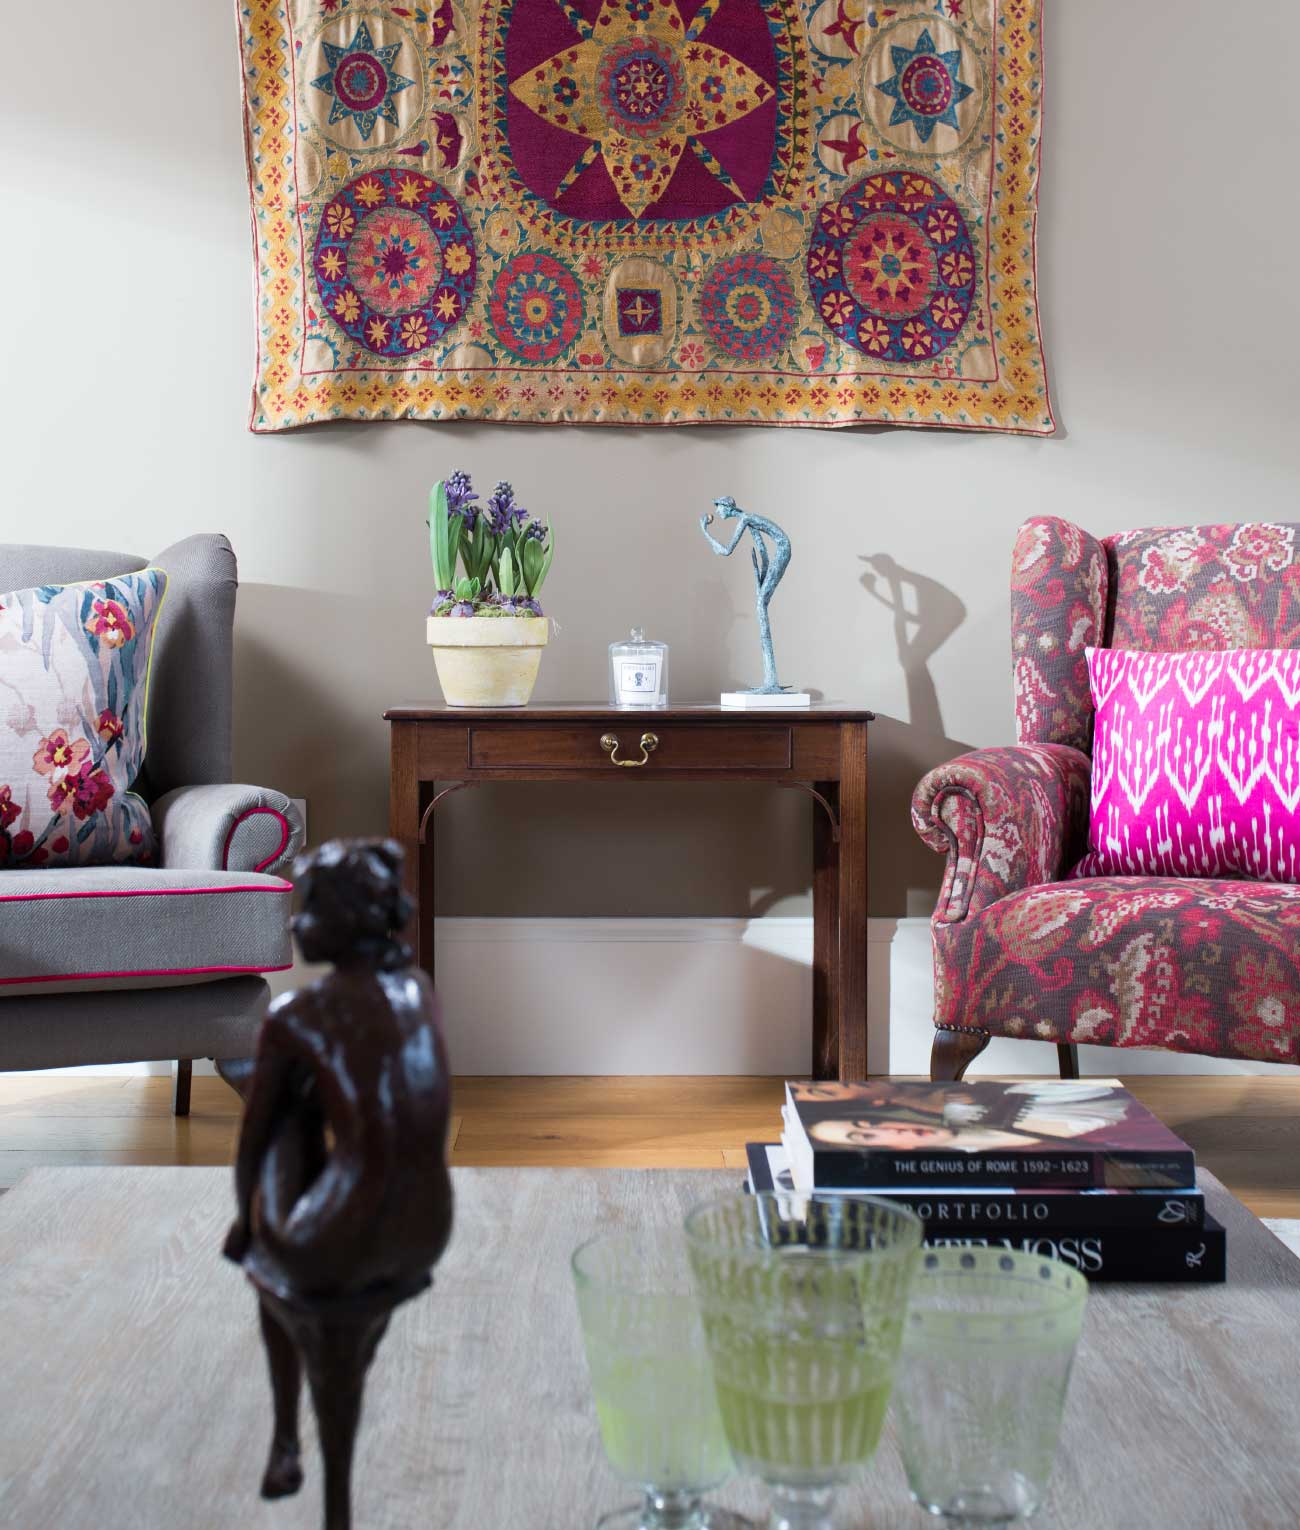 Thompson Clarke Interiors Furniture Design and Sourcing 4